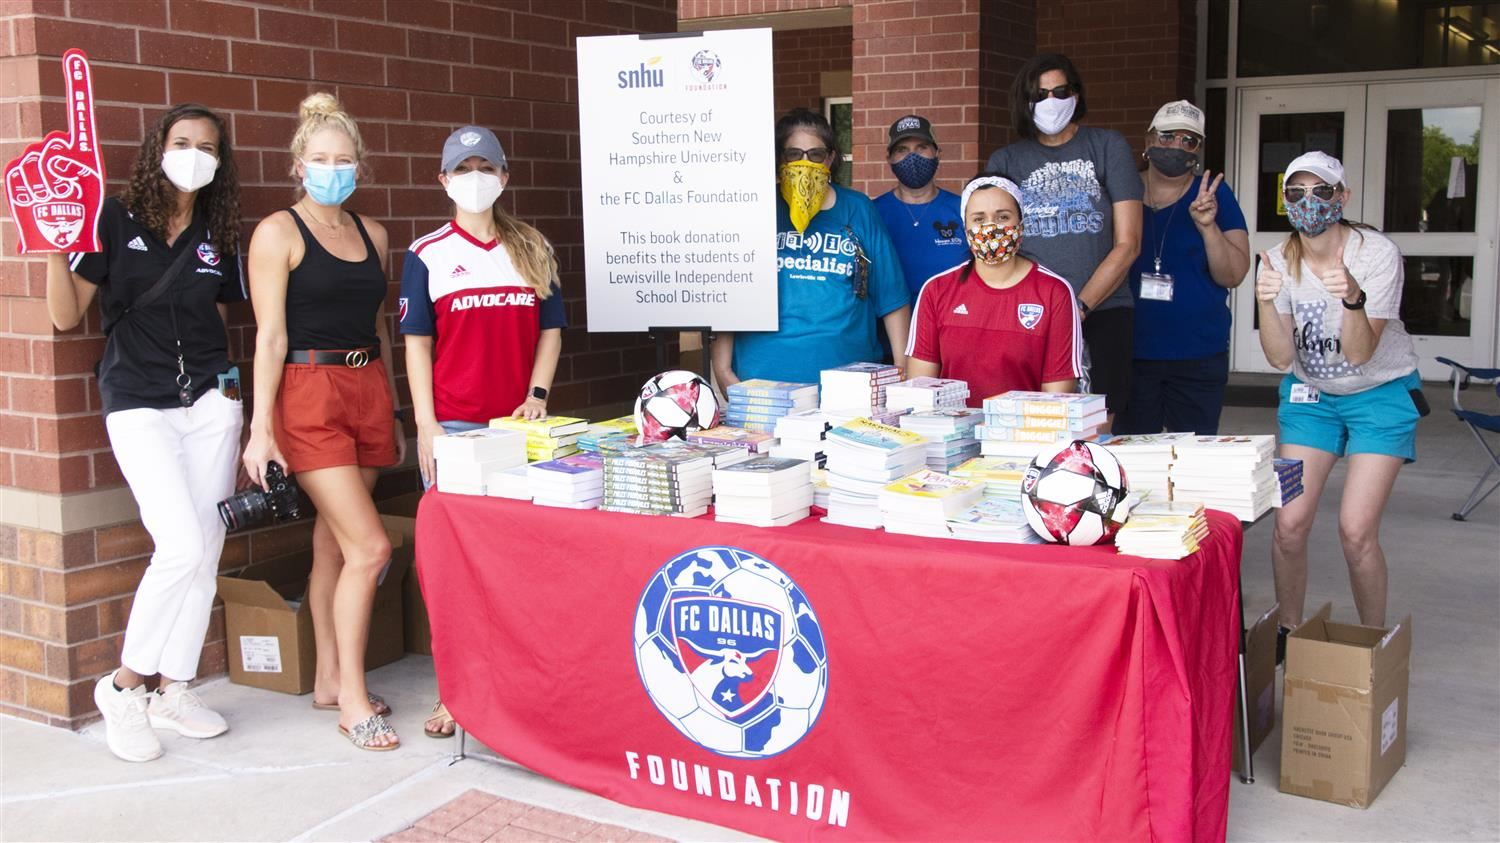 LISD Receives Generous Book Donation from FC Dallas, Southern New Hampshire University